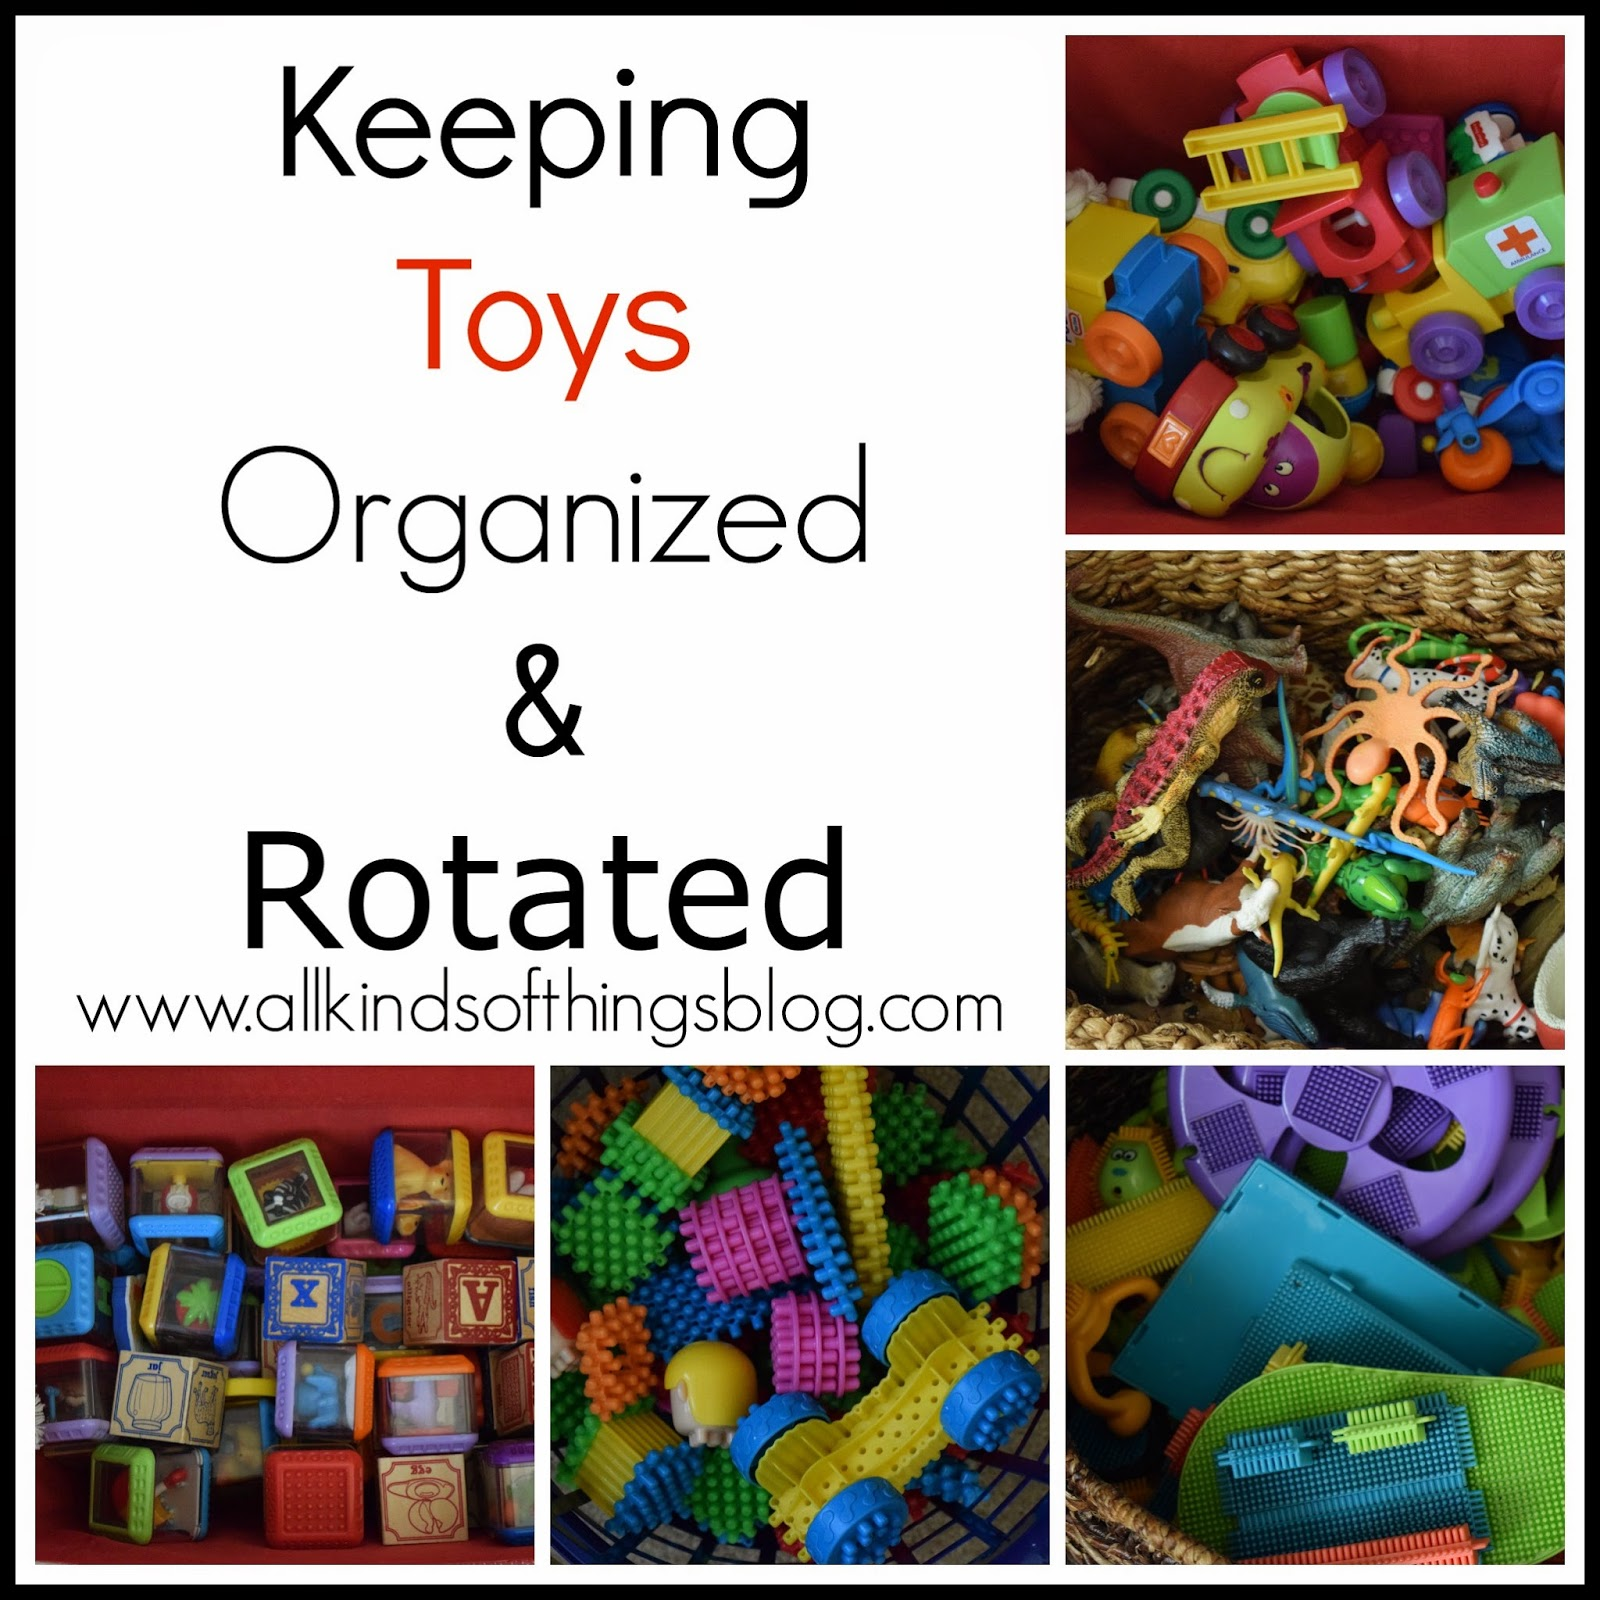 Keeping Toys Organized & Rotated